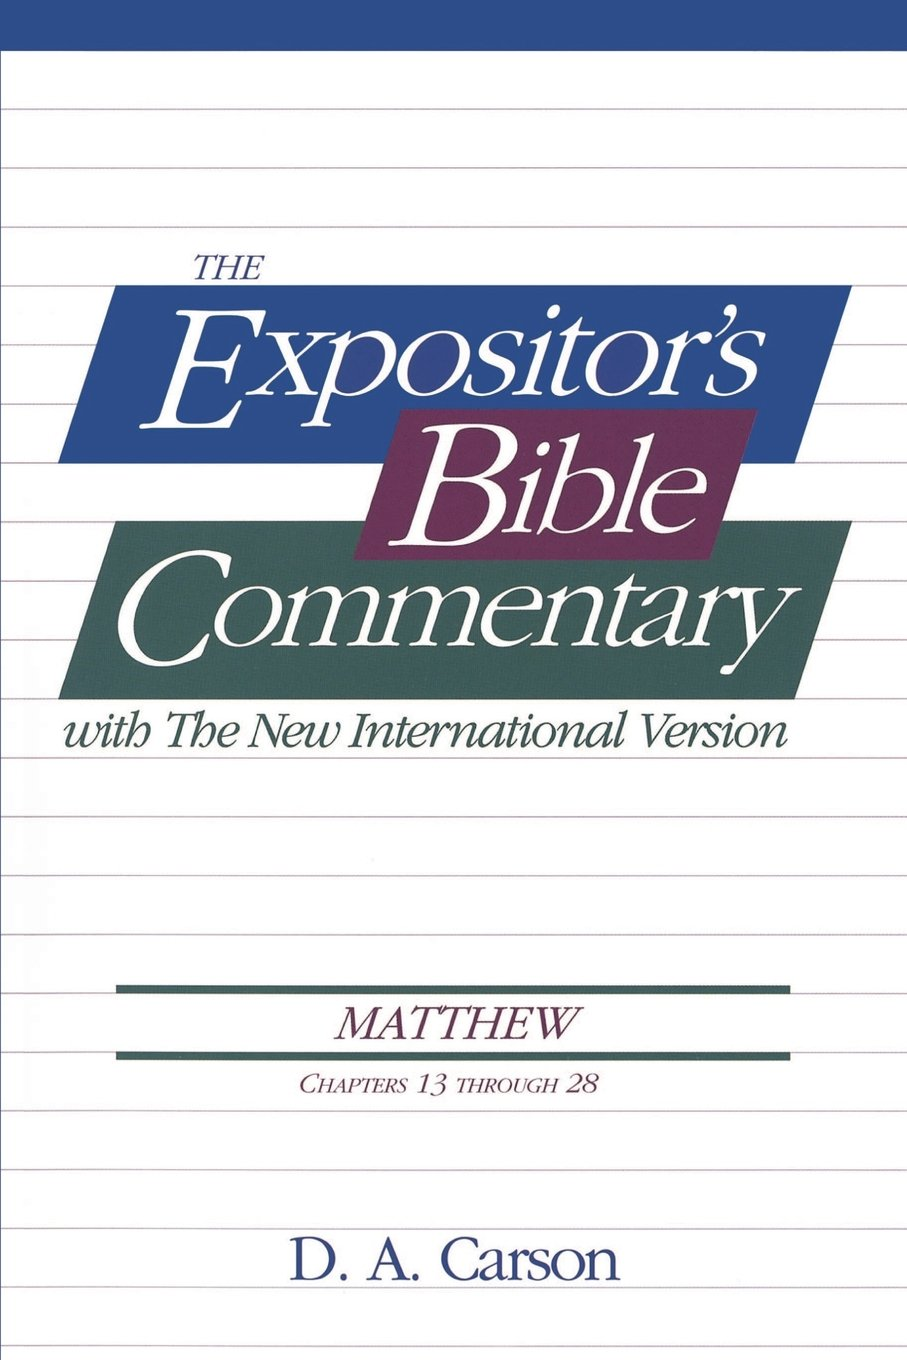 Matthew Vol 2 Ch 13 28 The Expositor S Bible Commentary D A